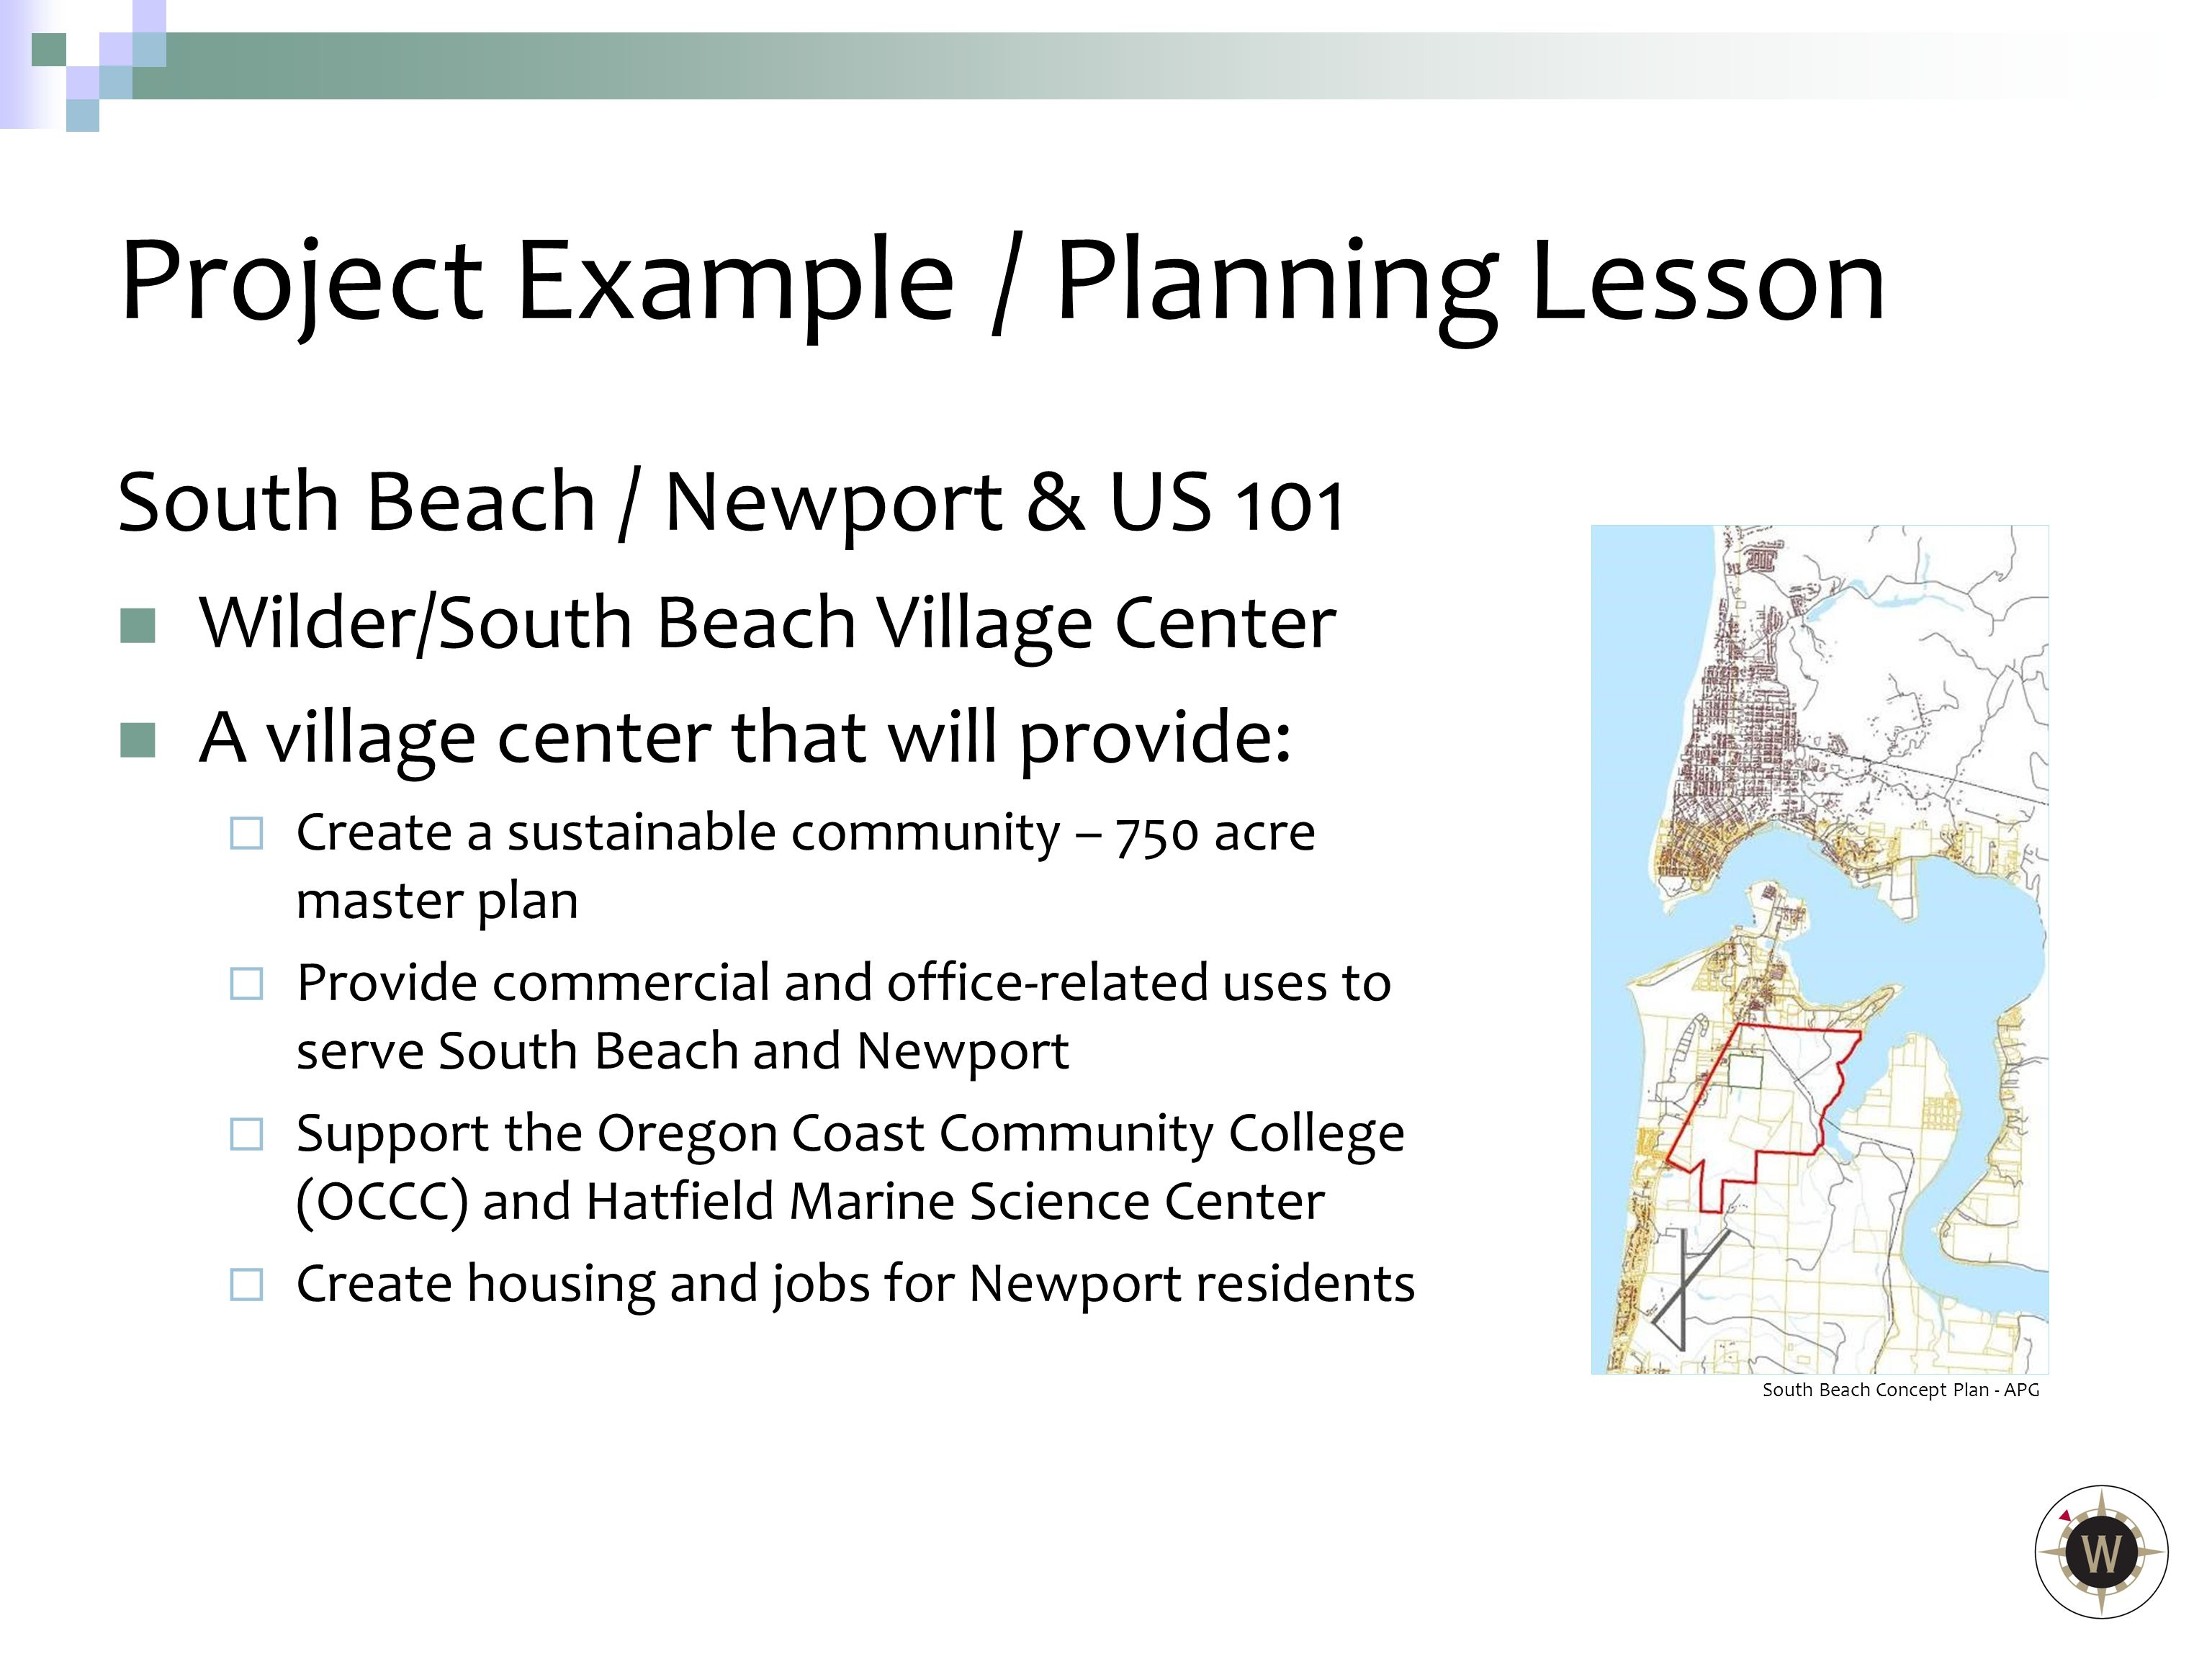 South Beach / Newport & US 101 Wilder/South Beach Village Center A village center that will provide:  Create a sustainable community – 750 acre master plan  Provide commercial and office-related uses to serve South Beach and Newport  Support the Oregon Coast Community College (OCCC) and Hatfield Marine Science Center  Create housing and jobs for Newport residents Project Example/ Planning Lesson South Beach Concept Plan - APG